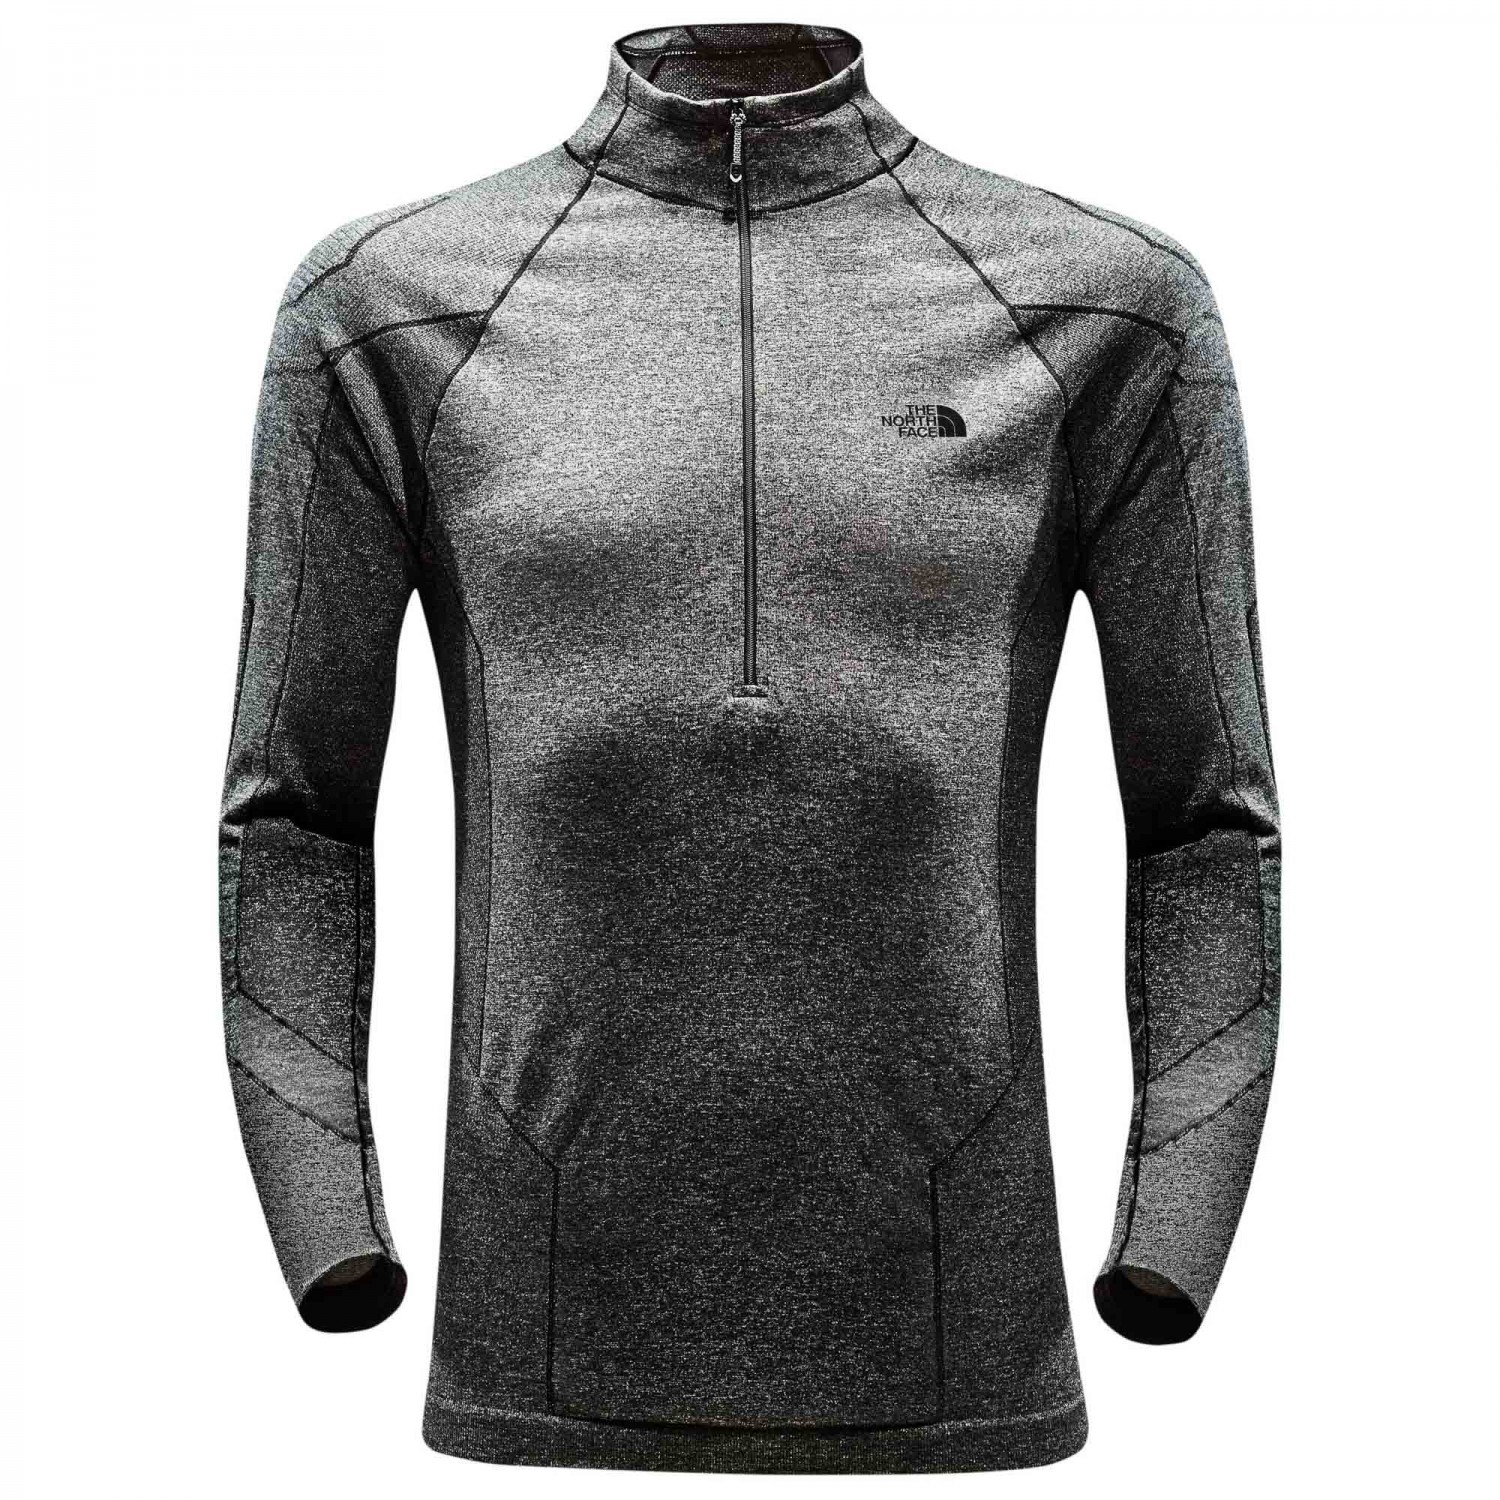 1a1b5aa9c The North Face - Summit L1 Top - Synthetic base layer - Black Heather | L